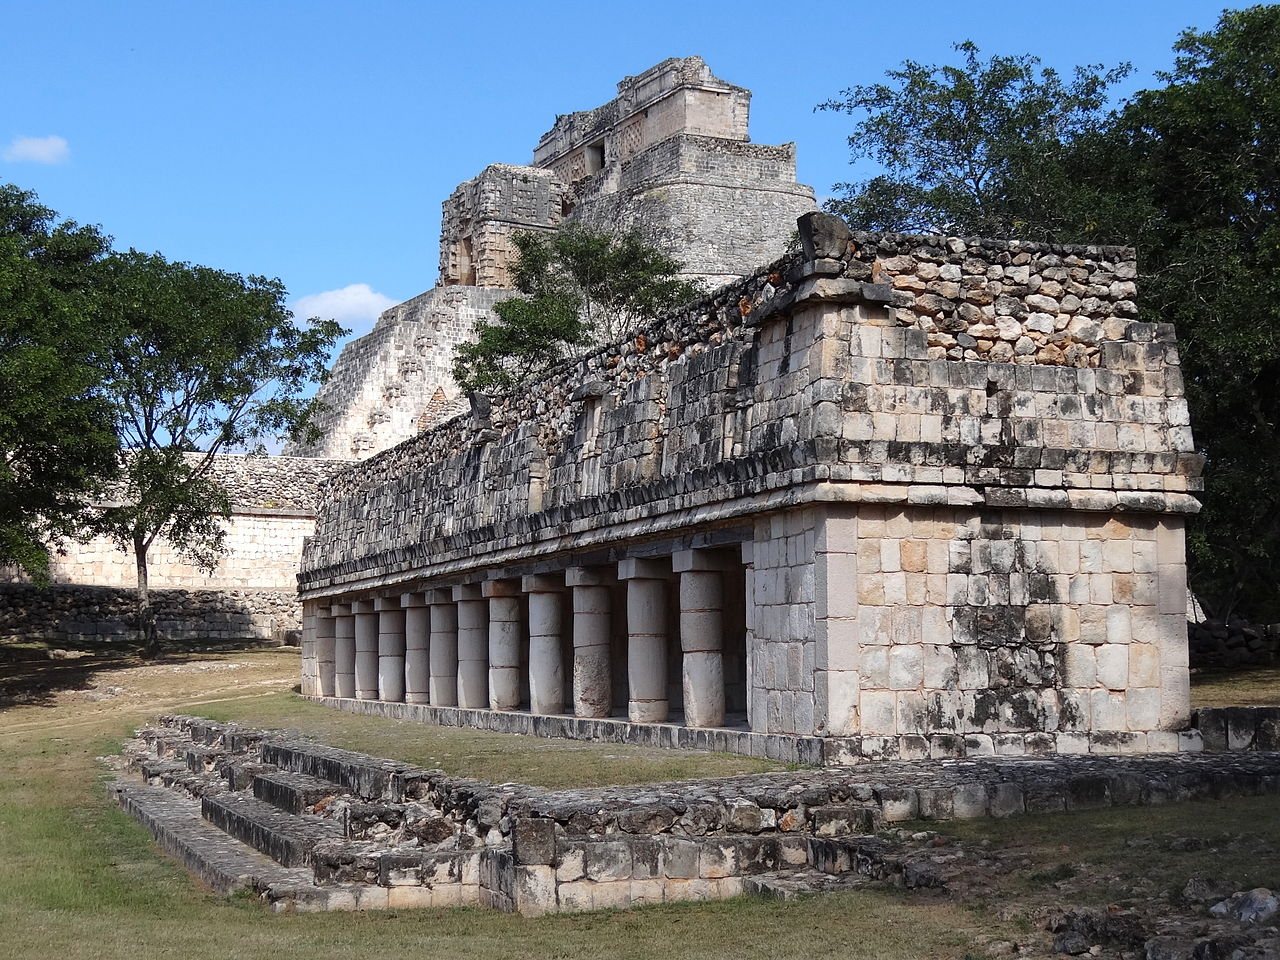 merida dating site On the east side of the plaza mayor, occupying the site of an earlier maya temple, stands mérida cathedral, built between 1561 and 1598 and the largest church in yucatán.